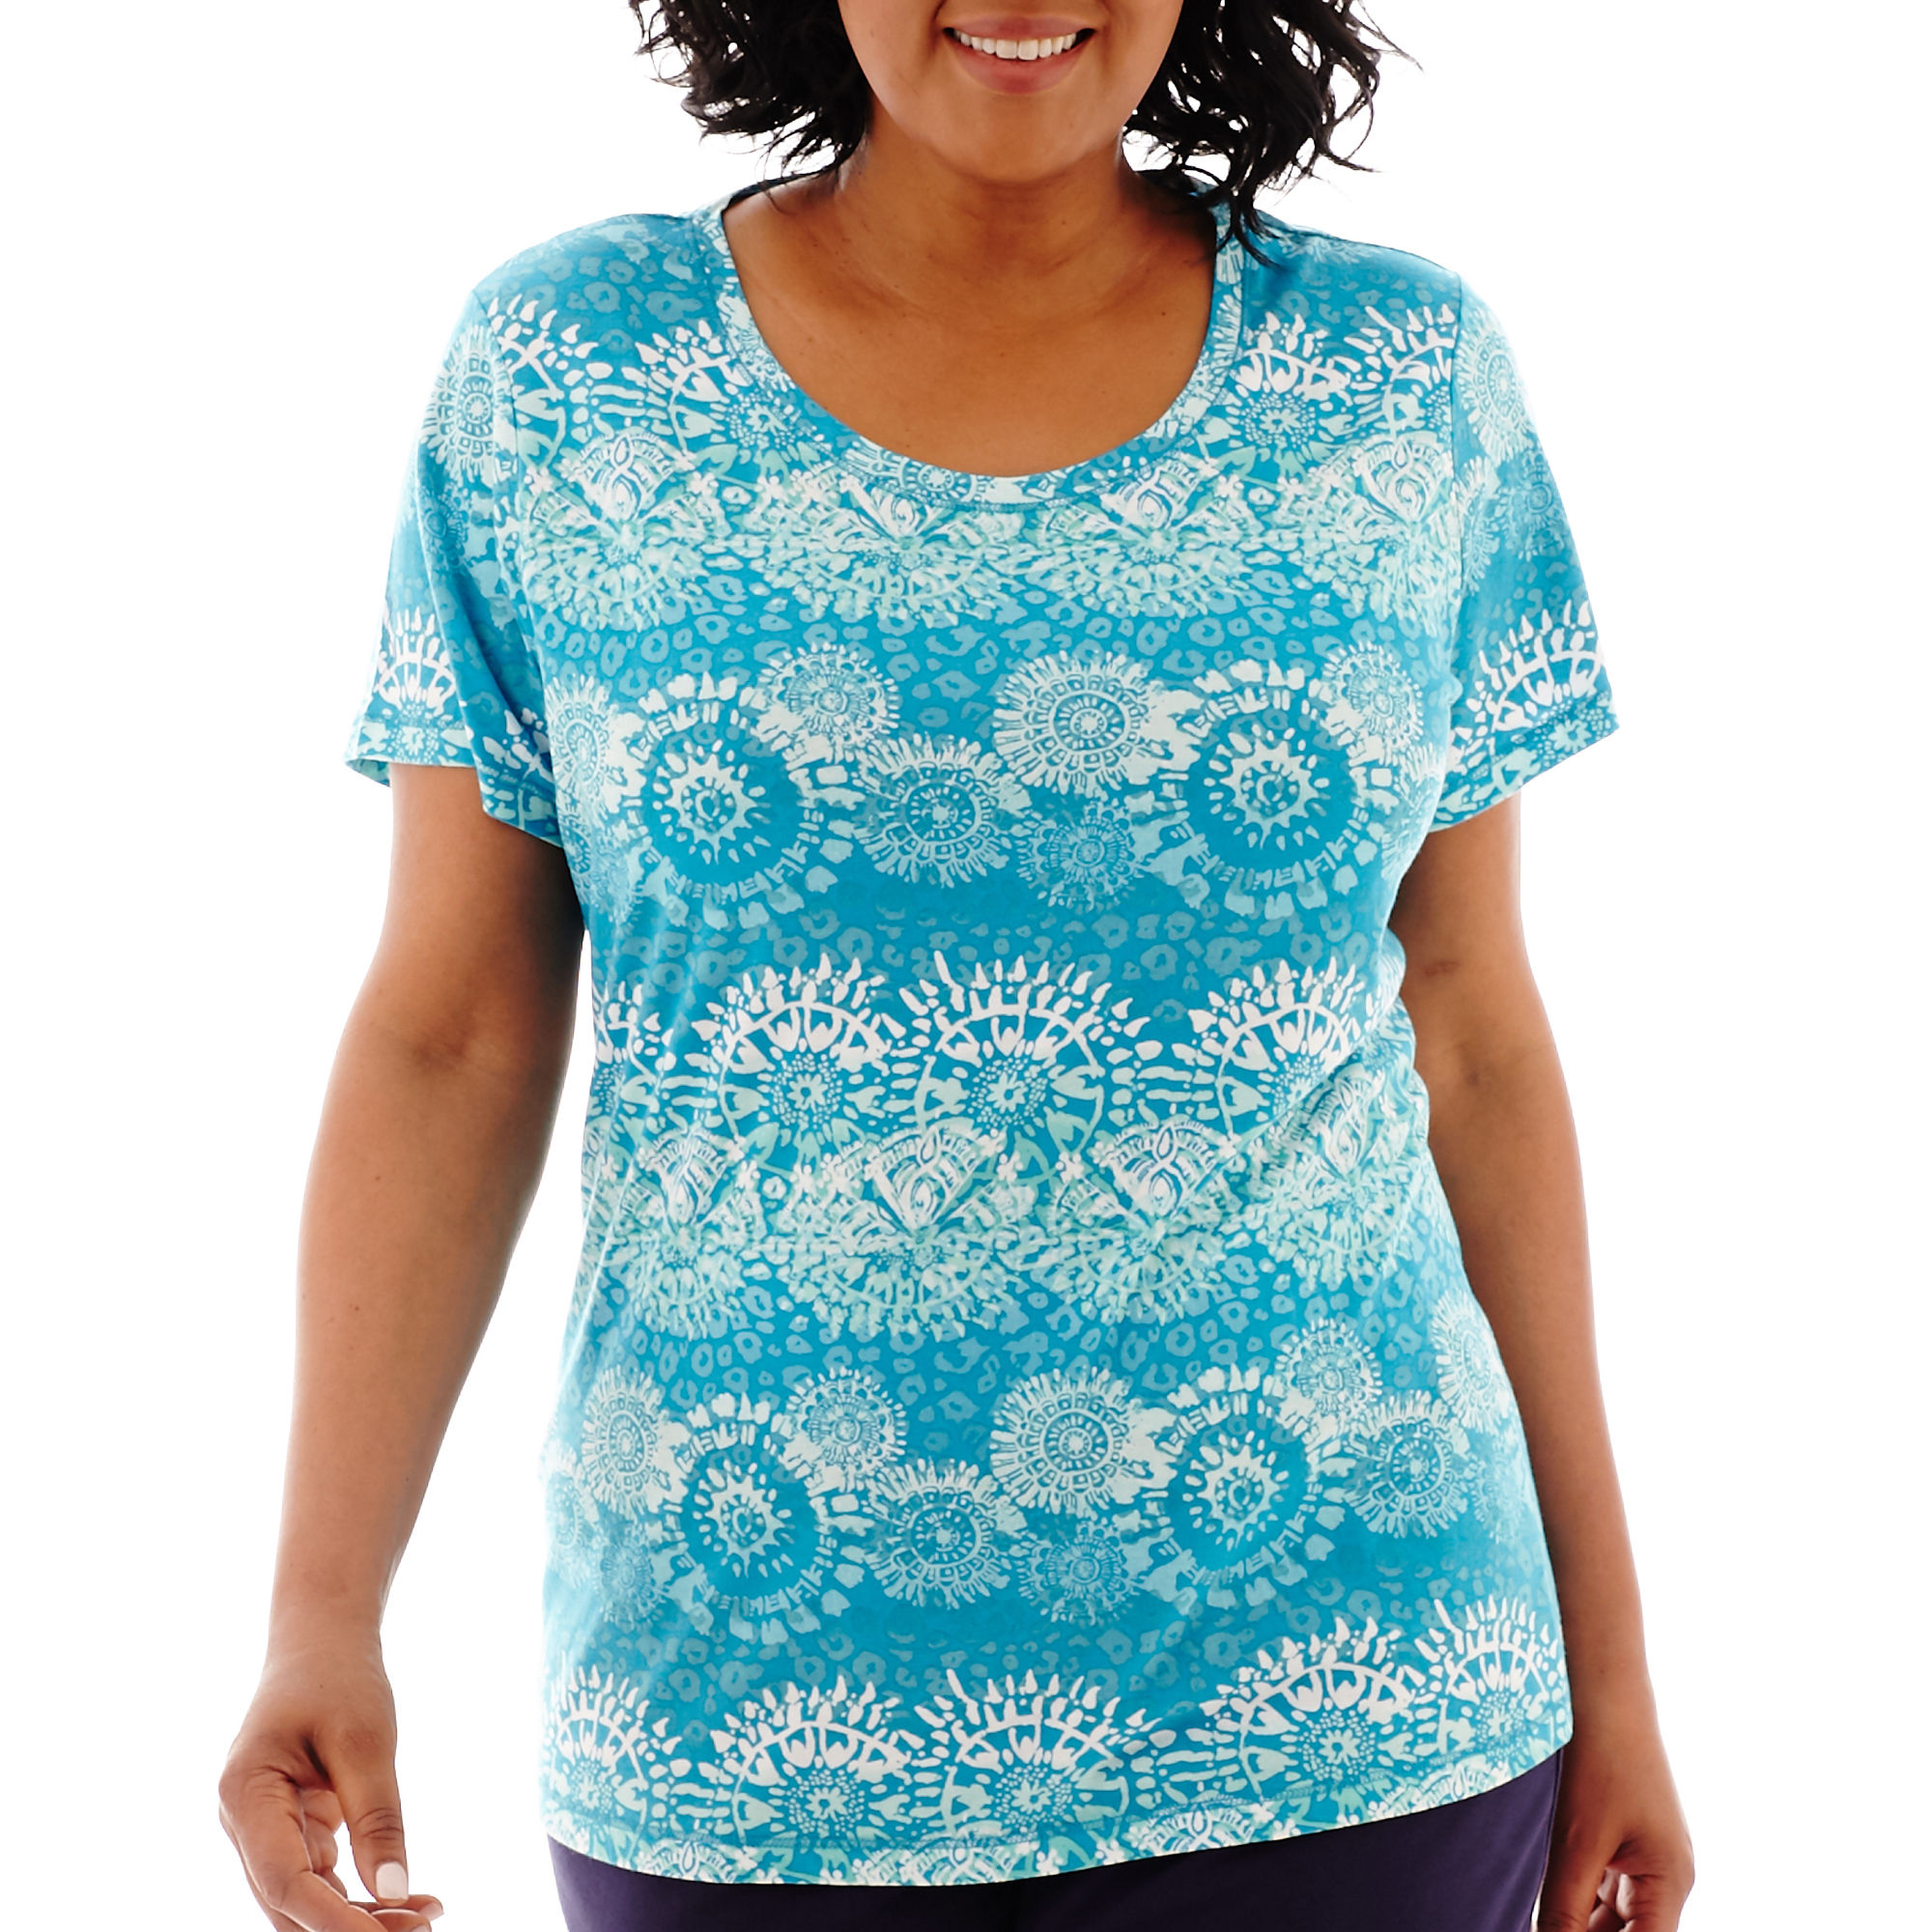 Made For Life Short-Sleeve Yoga T-Shirt - Plus